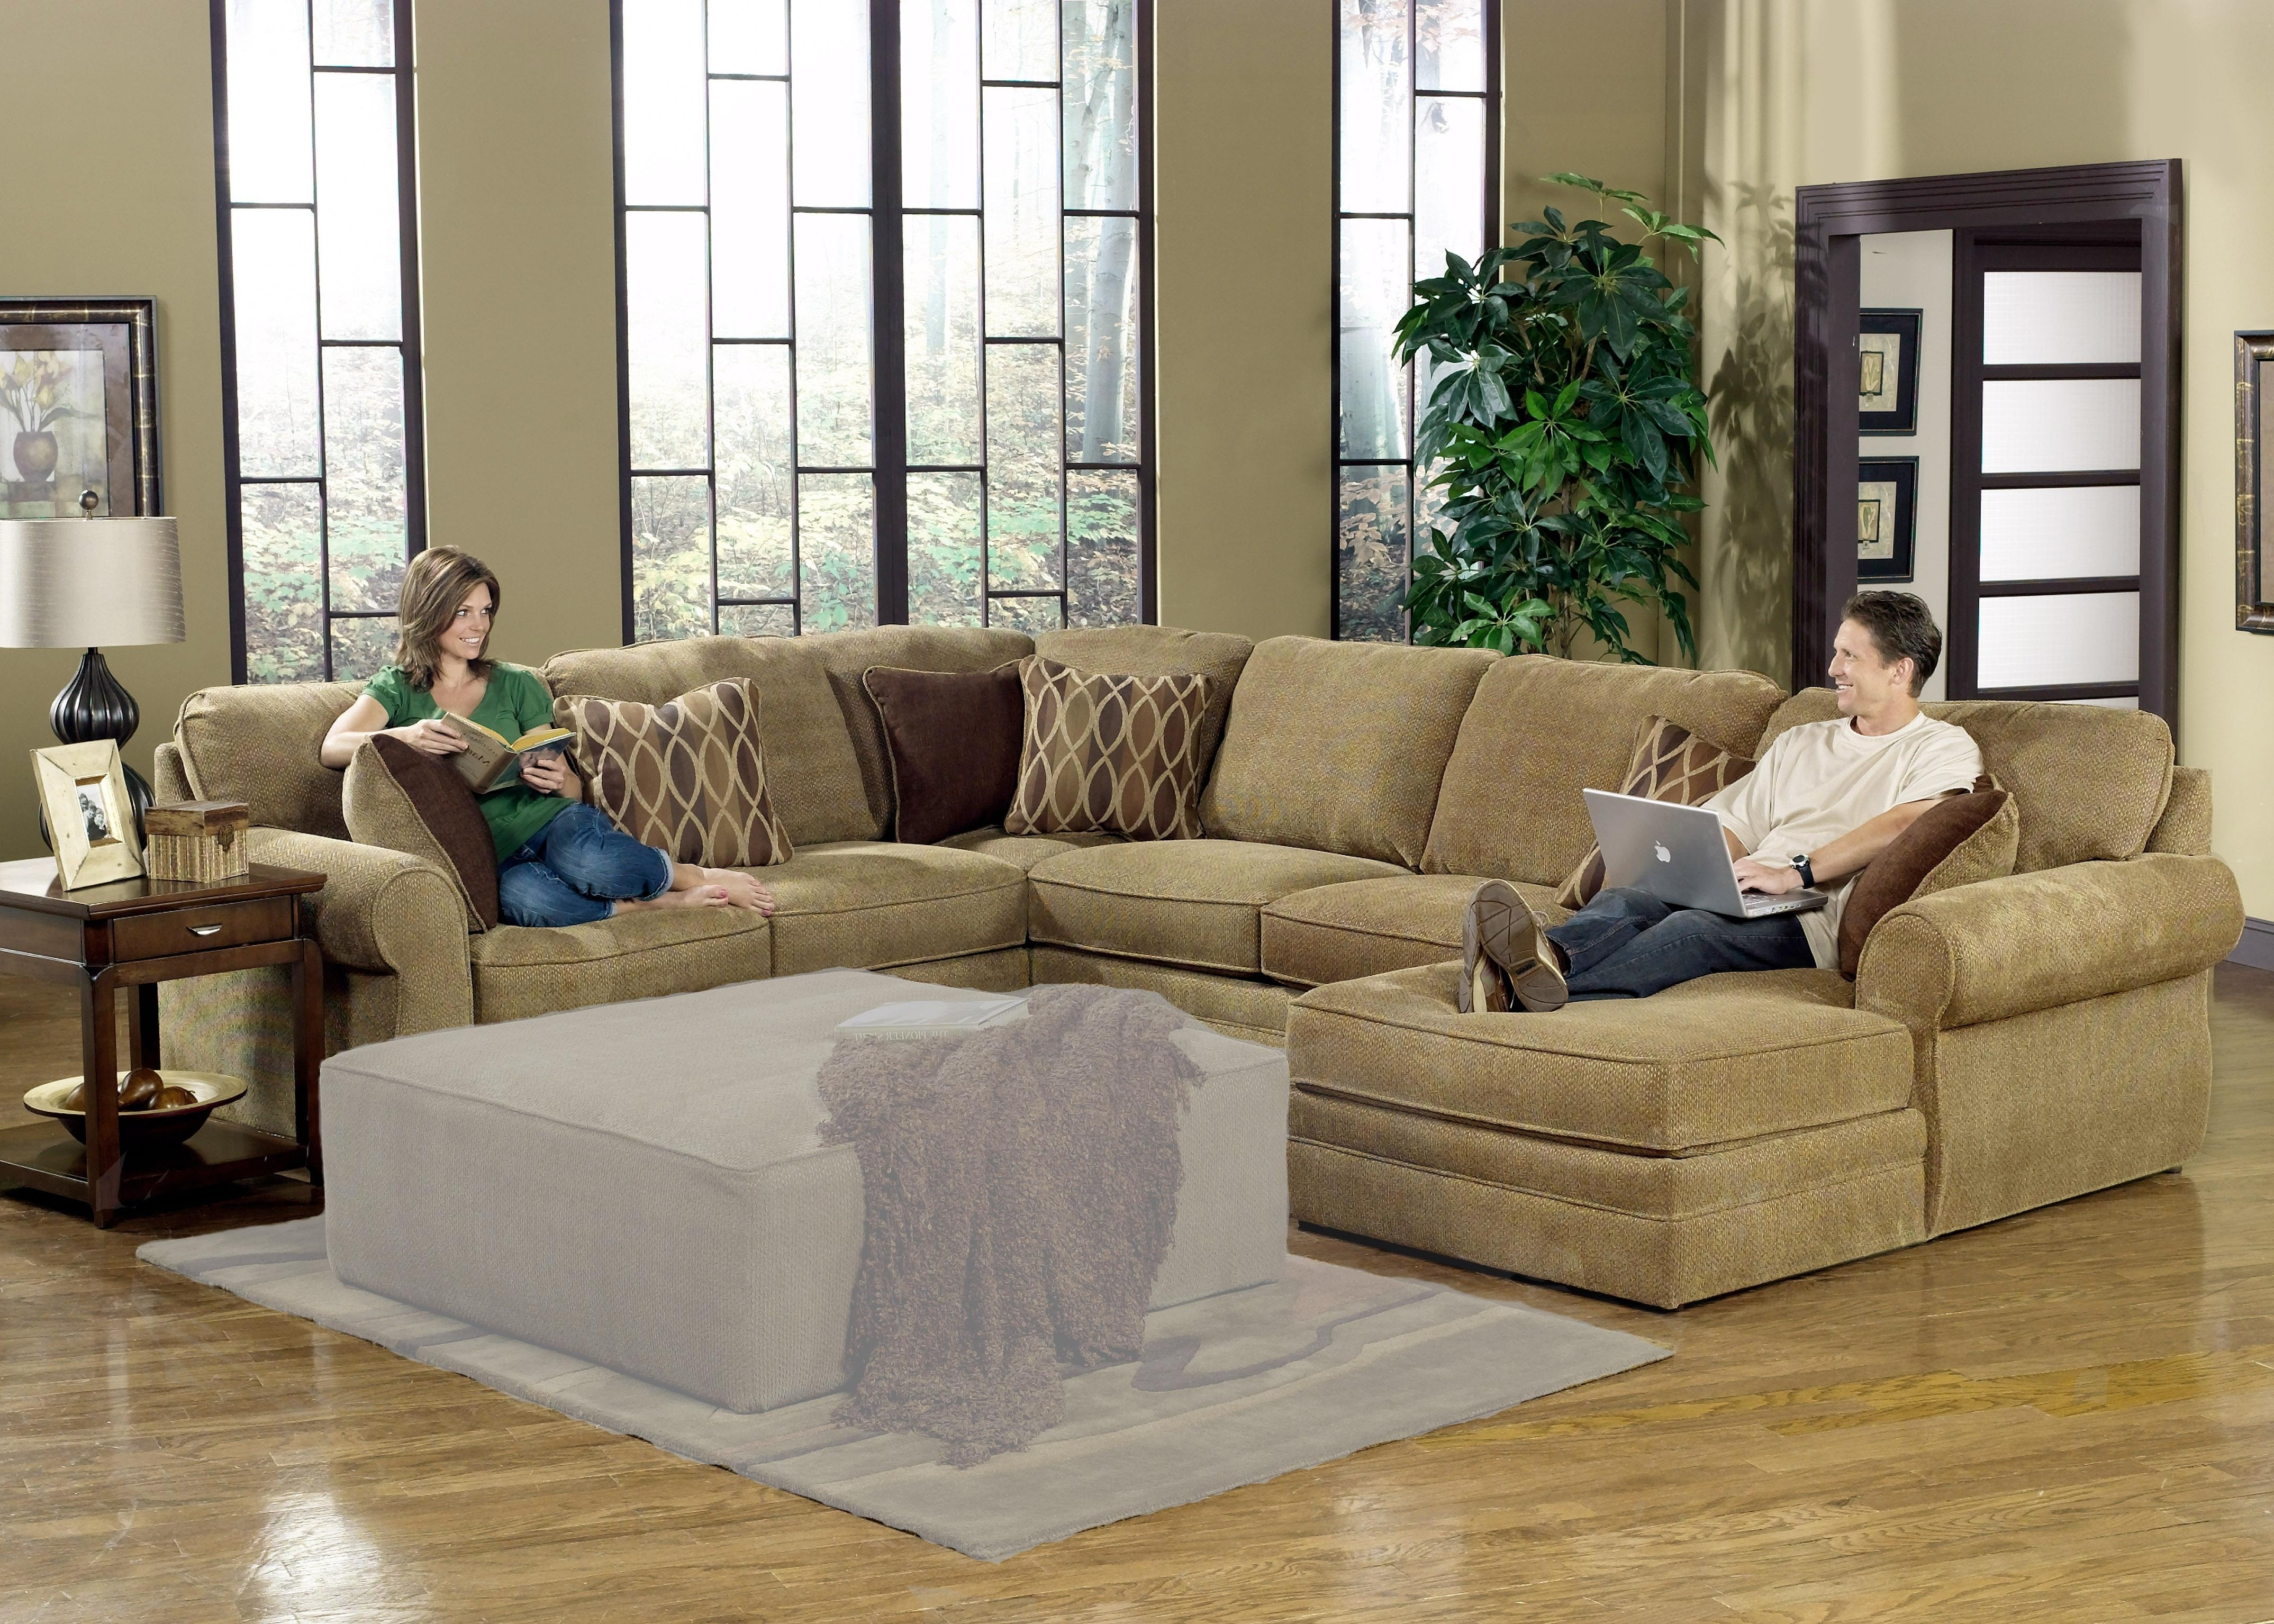 Best And Newest Sectional Sofas In Atlanta Within Huge Sectional Sofas – Tourdecarroll (View 9 of 20)